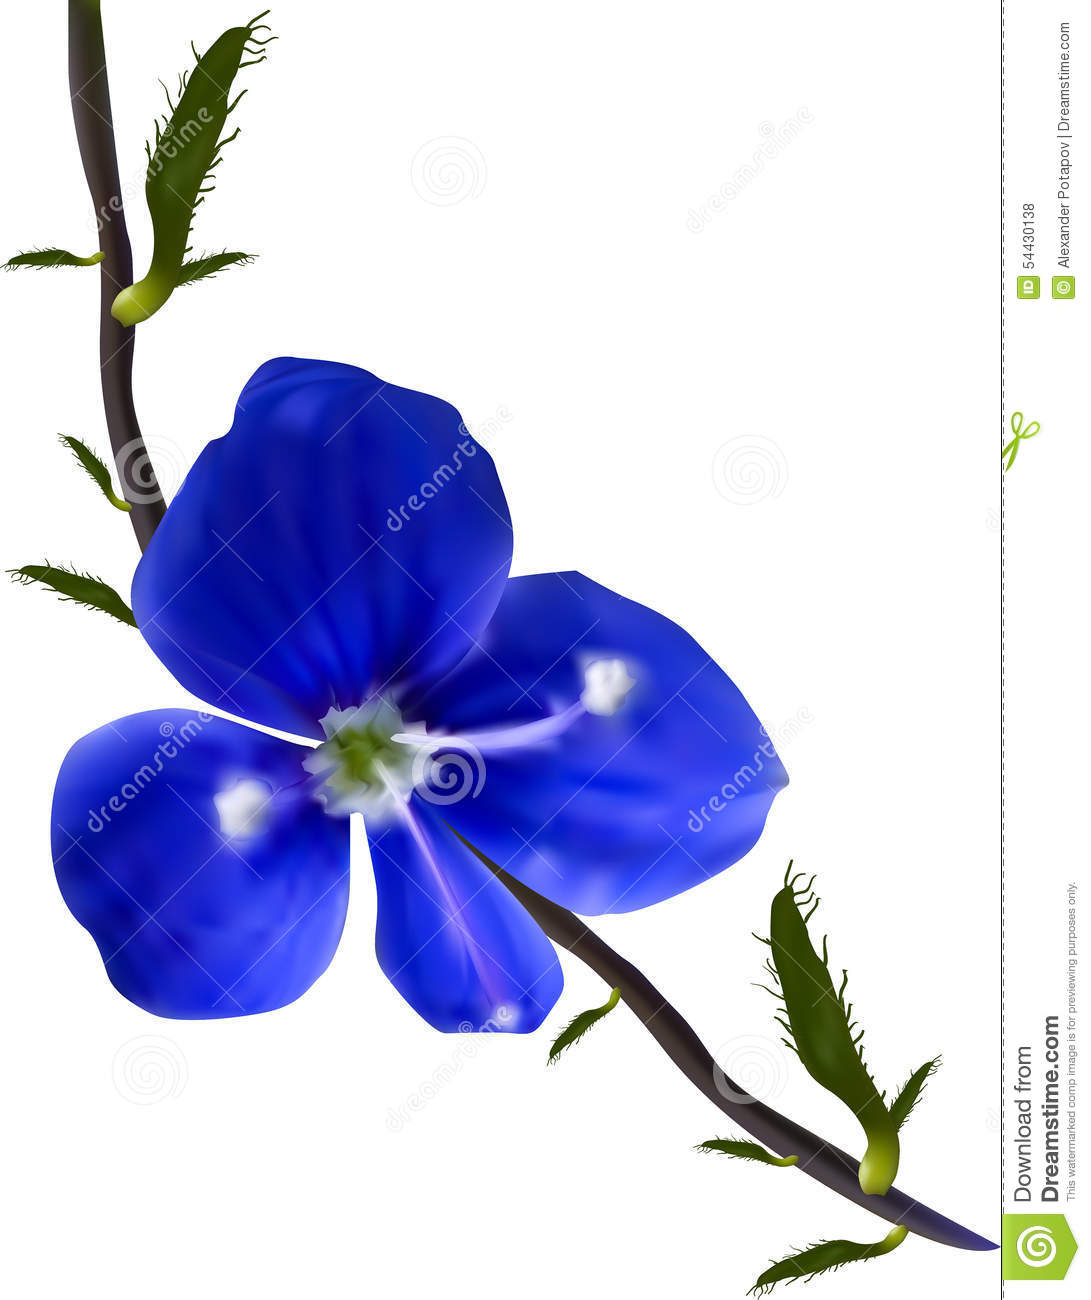 Dark Blue And White Flowers: Small Wild Dark Blue Flower Illustration Stock Vector